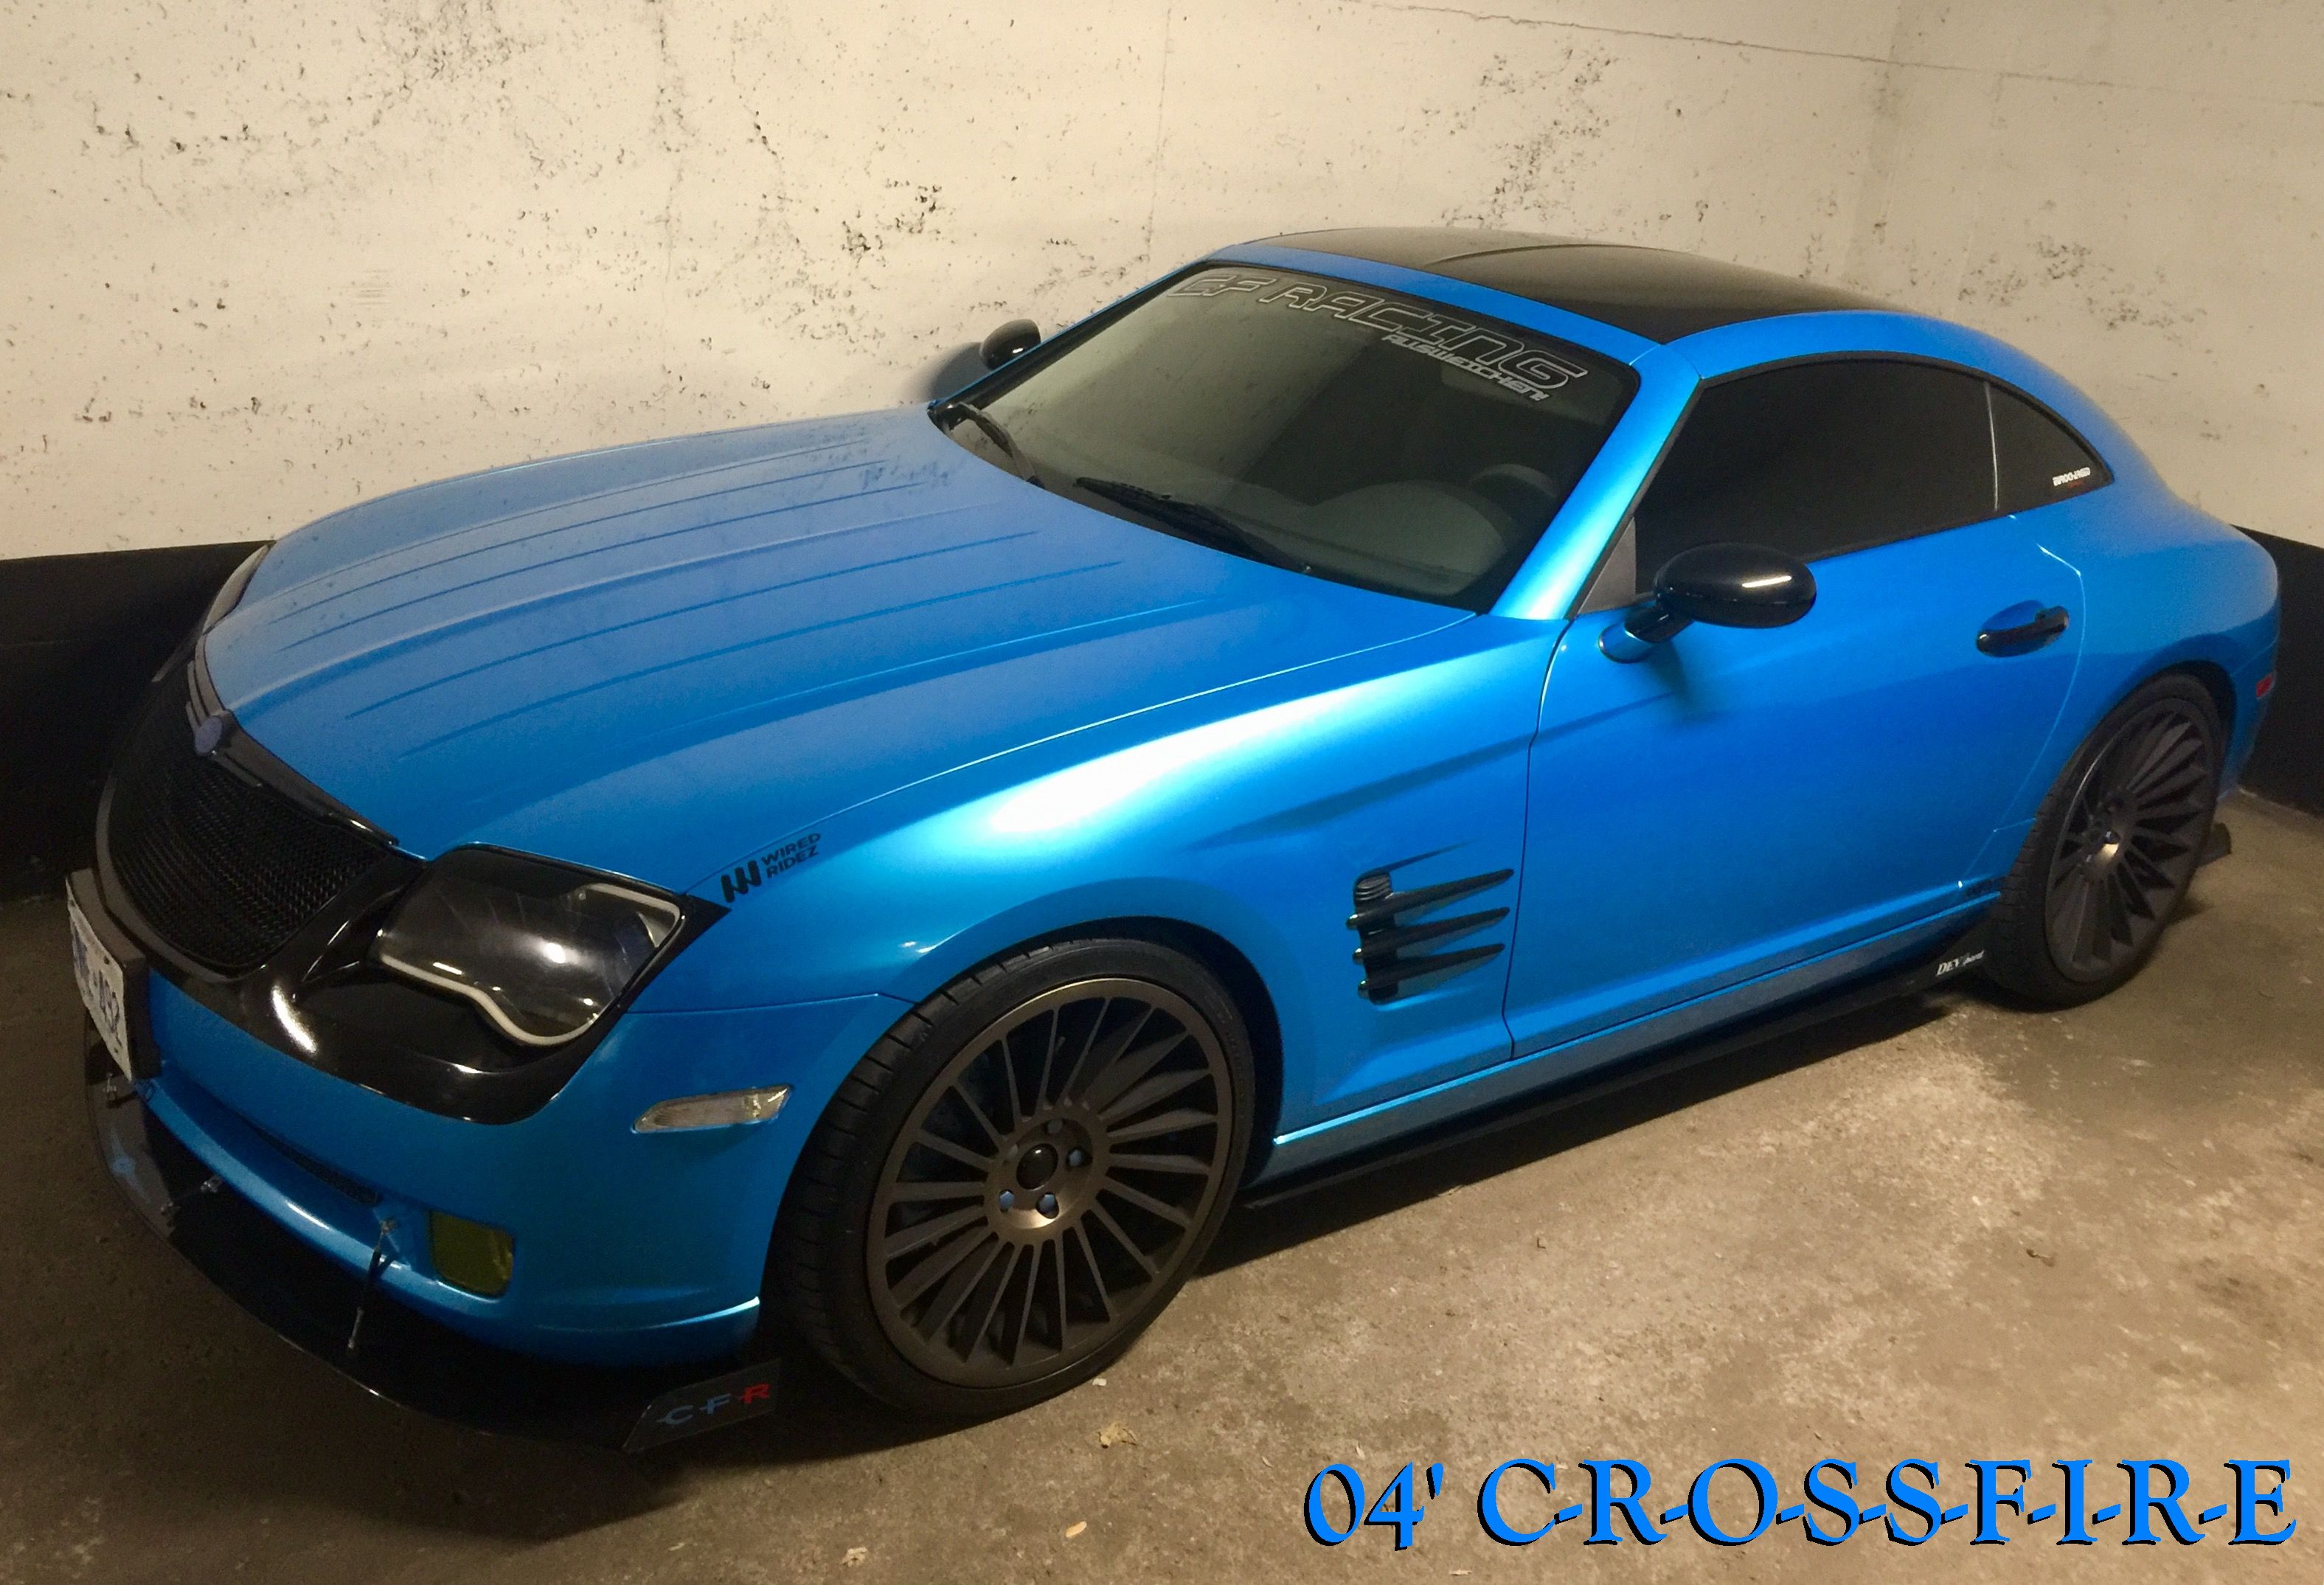 Pin By Dustin Depperschmidt On Crossfire With Images Chrysler